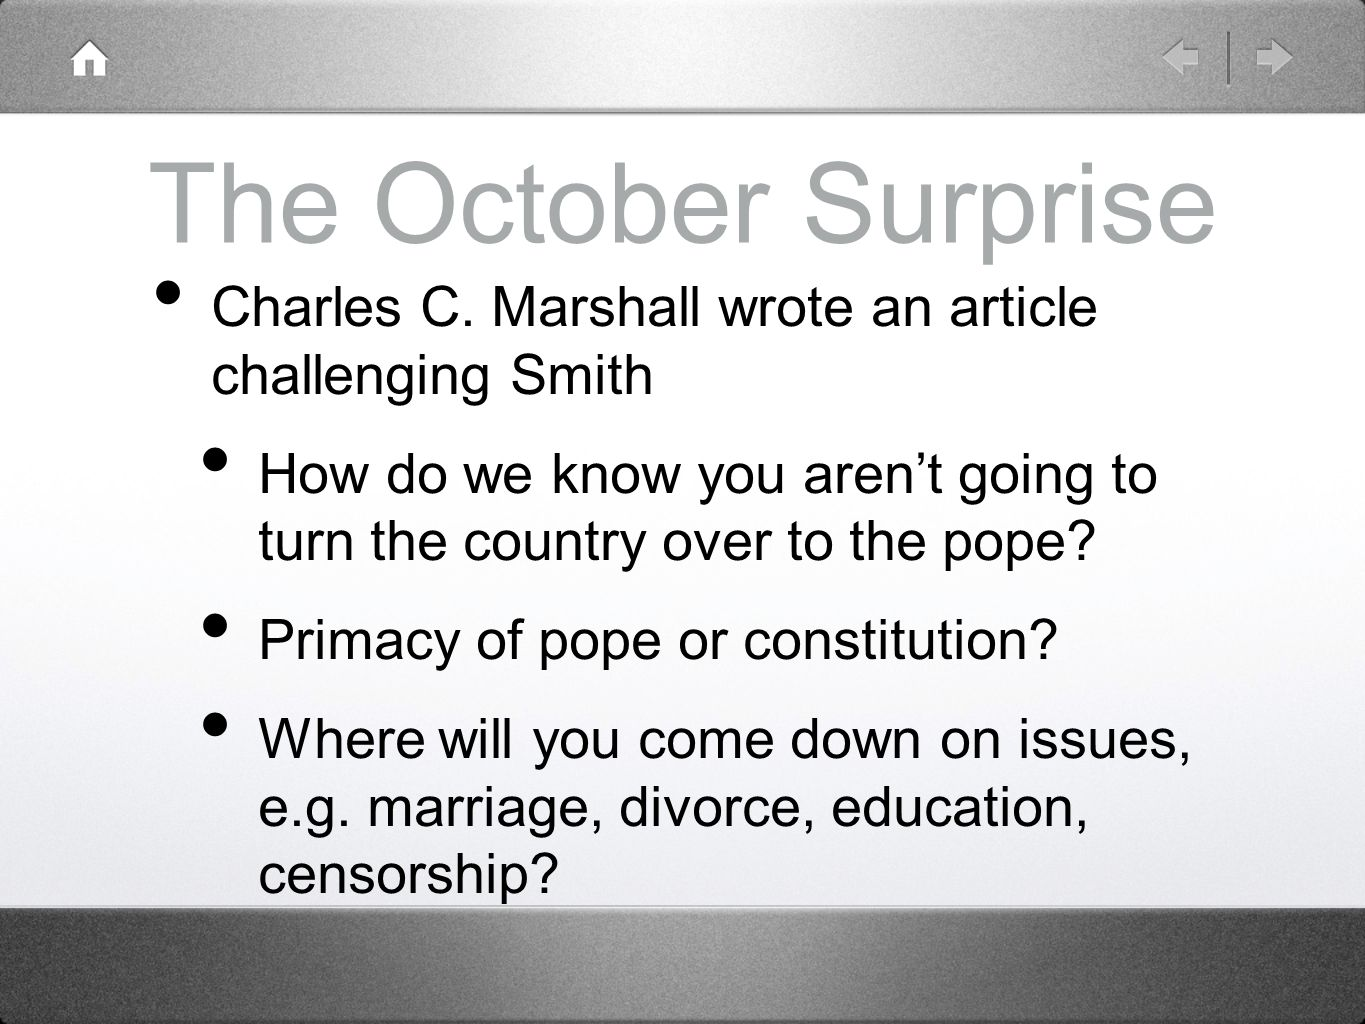 The October Surprise Charles C. Marshall wrote an article challenging Smith. How do we know you aren't going to turn the country over to the pope